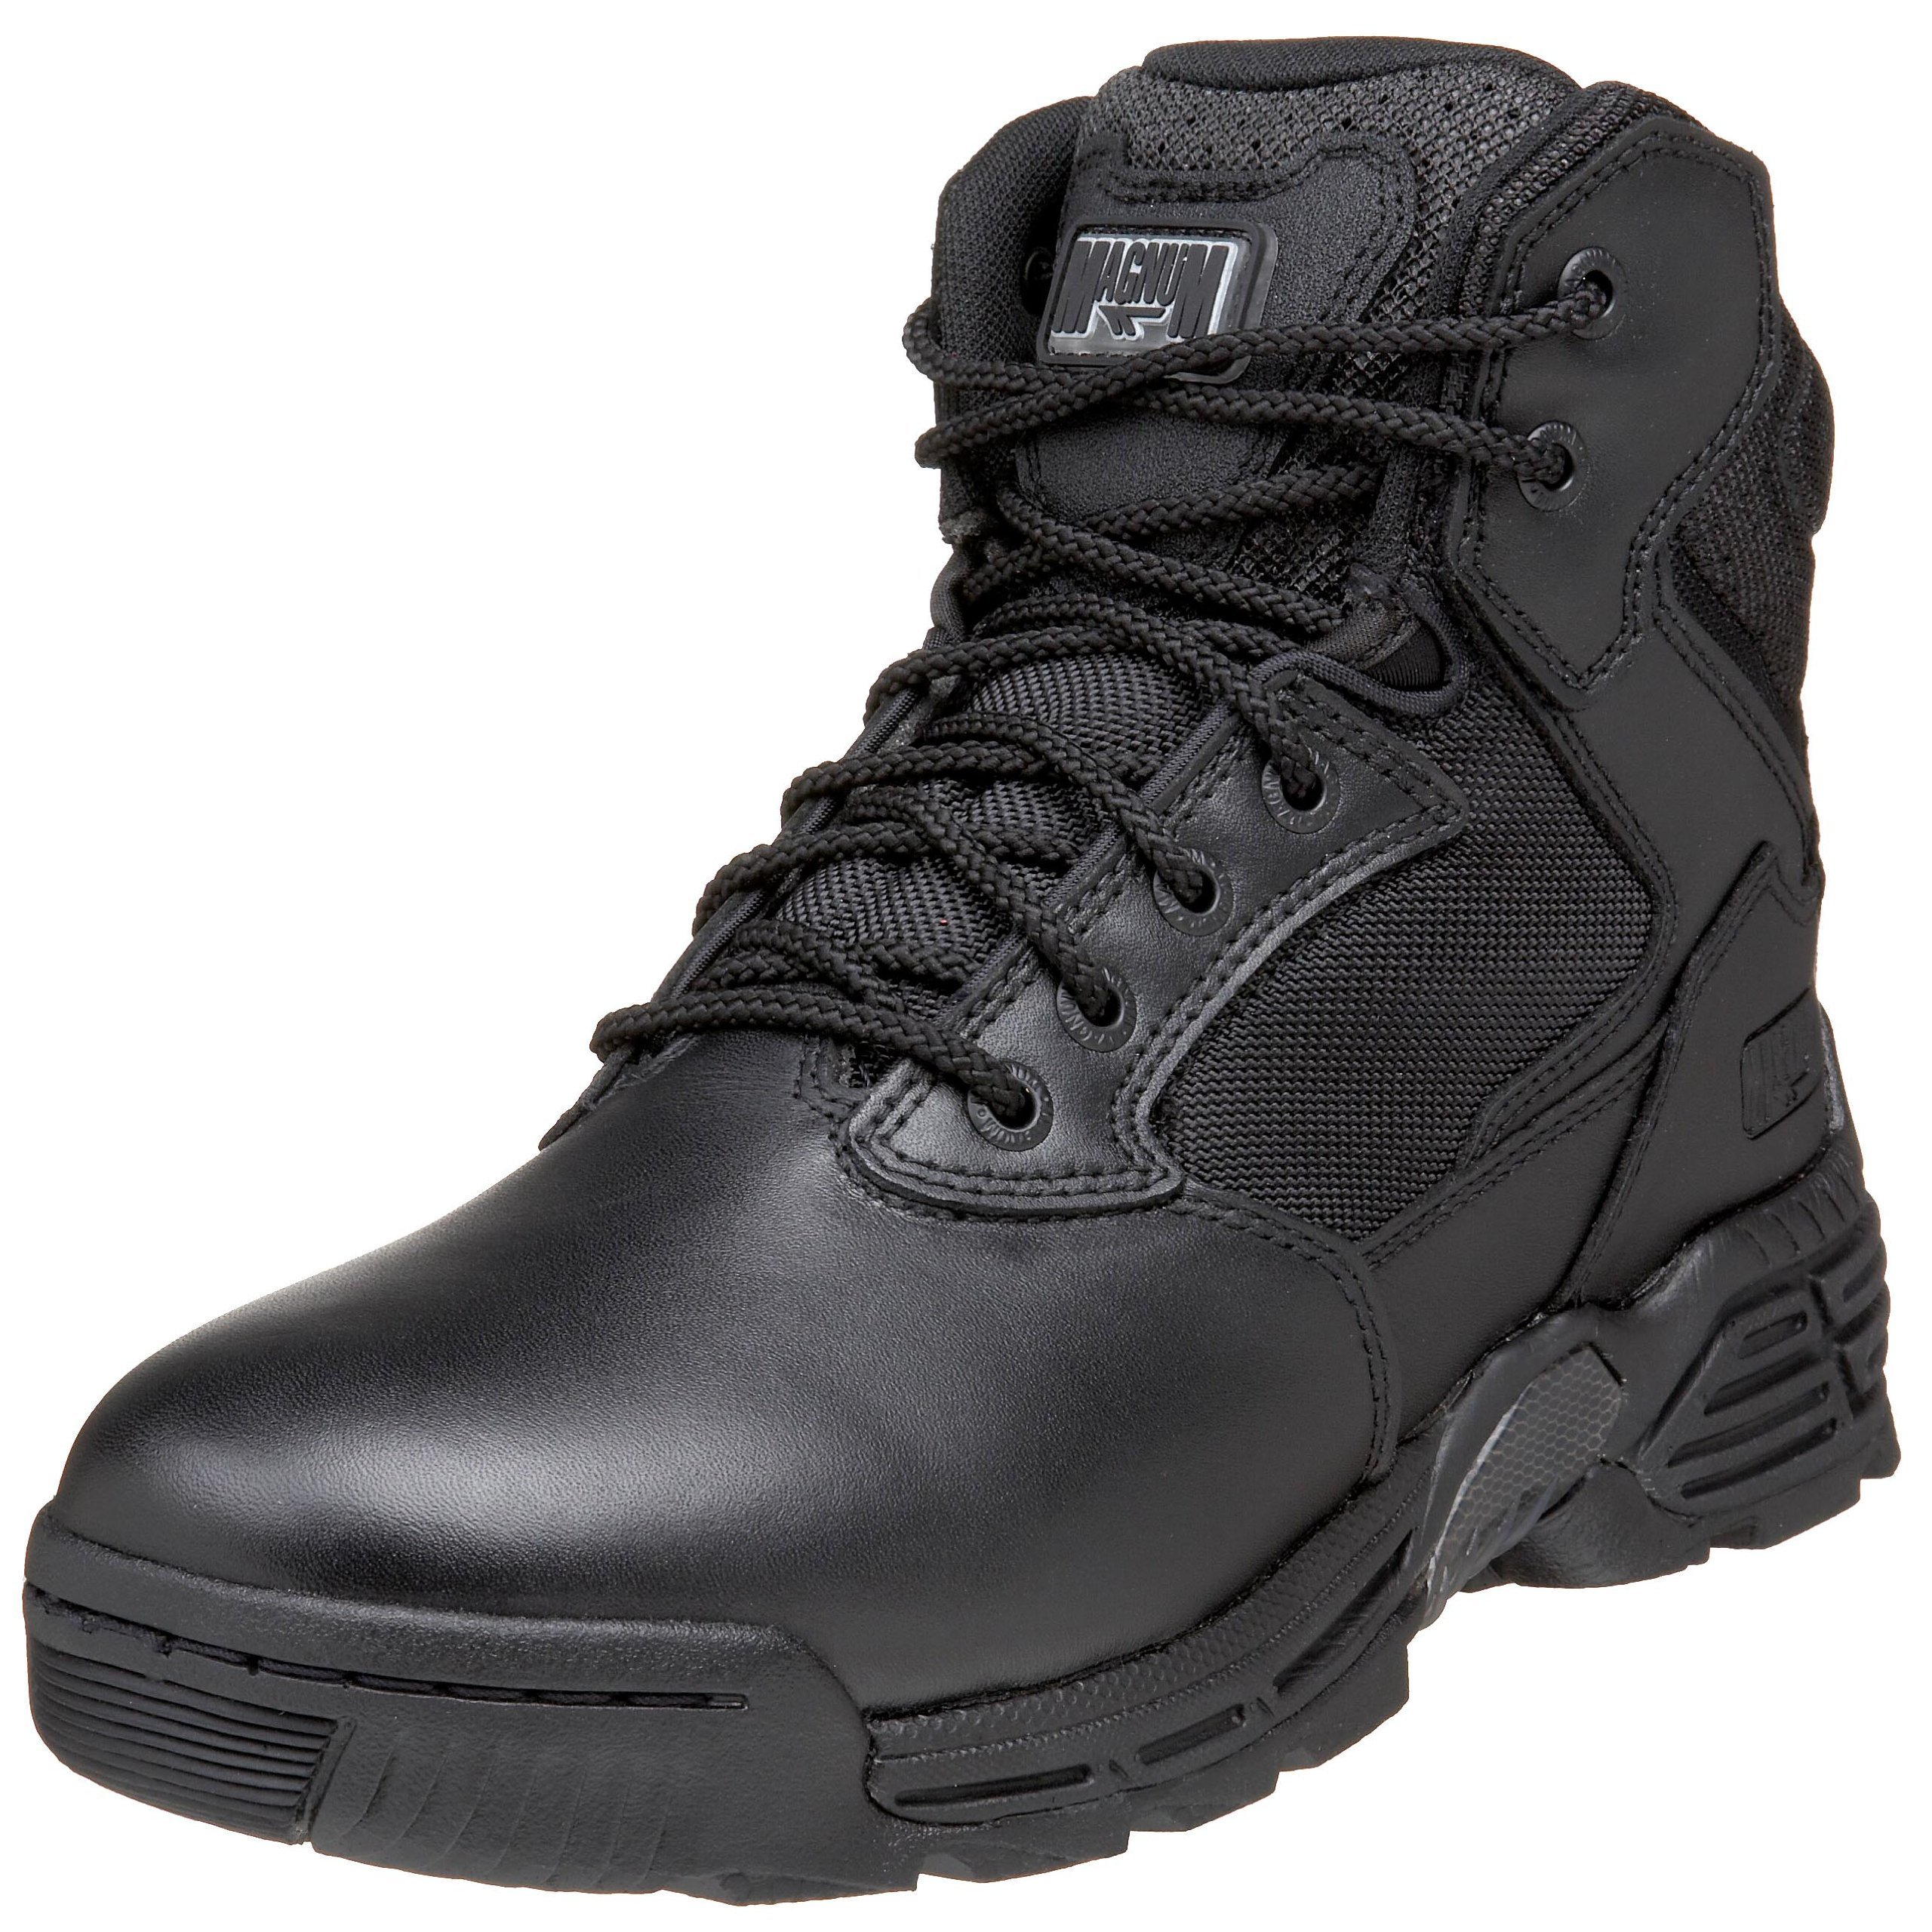 Magnum Women's Stealth Force 6.0 Boot,Black, 7.5 M US by Magnum